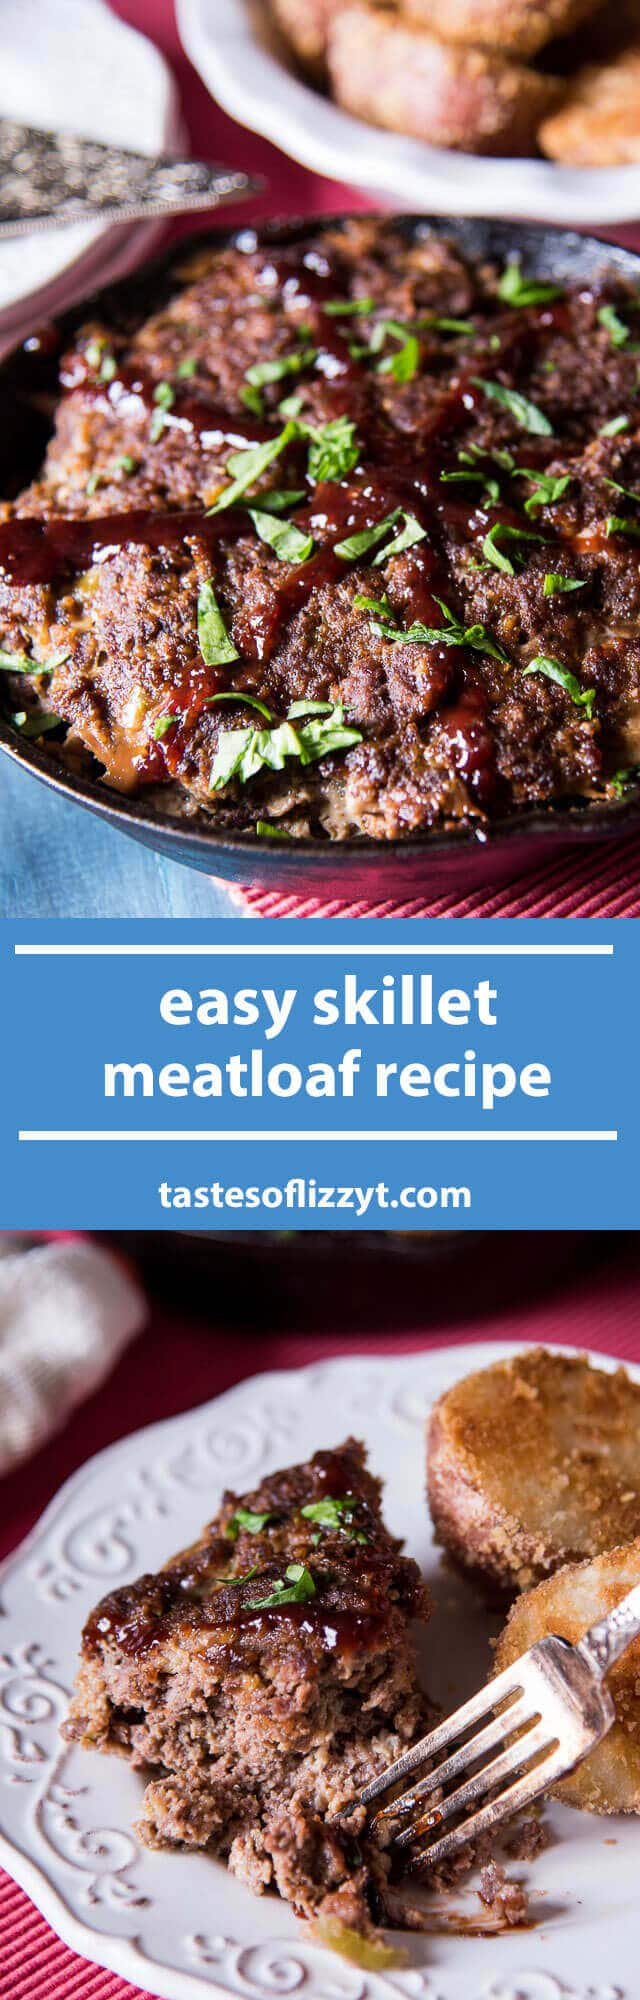 A classic Amish recipe. Just 7 ingredients in this easy skillet meatloaf with the tangy flavor of barbecue sauce. Decorate the top like a wagon wheel! easy dinner recipe / easy meatloaf recipe / amish recipe